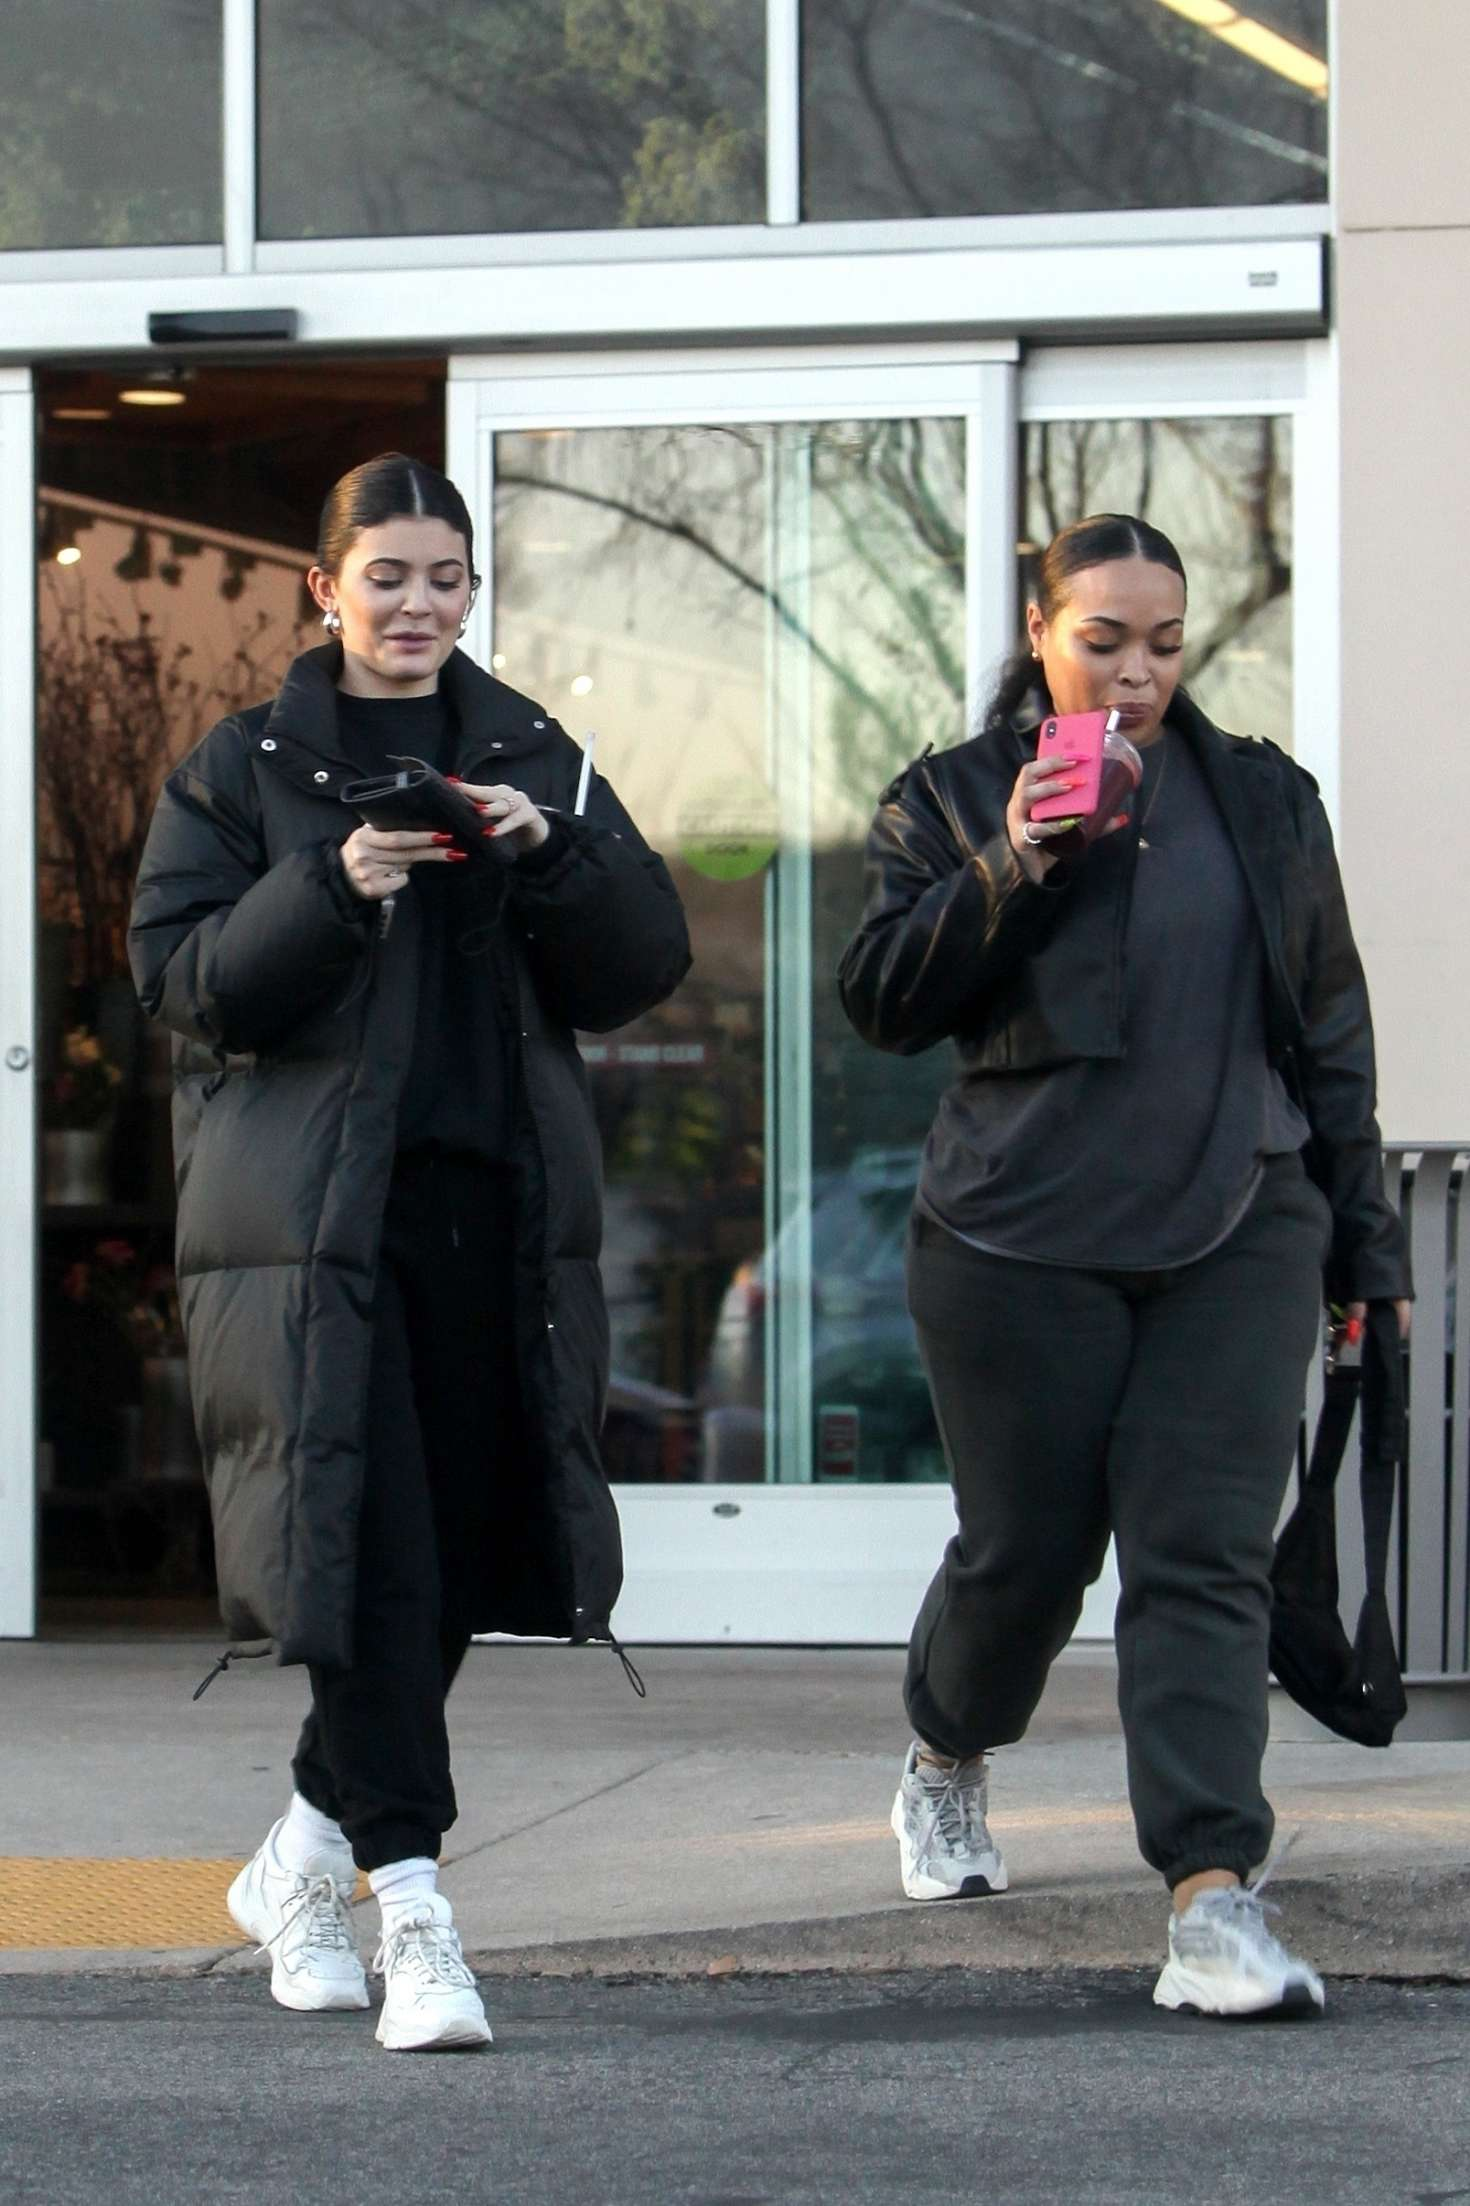 Kylie Jenner wearing a baggy black sweatshirt with a crew neck